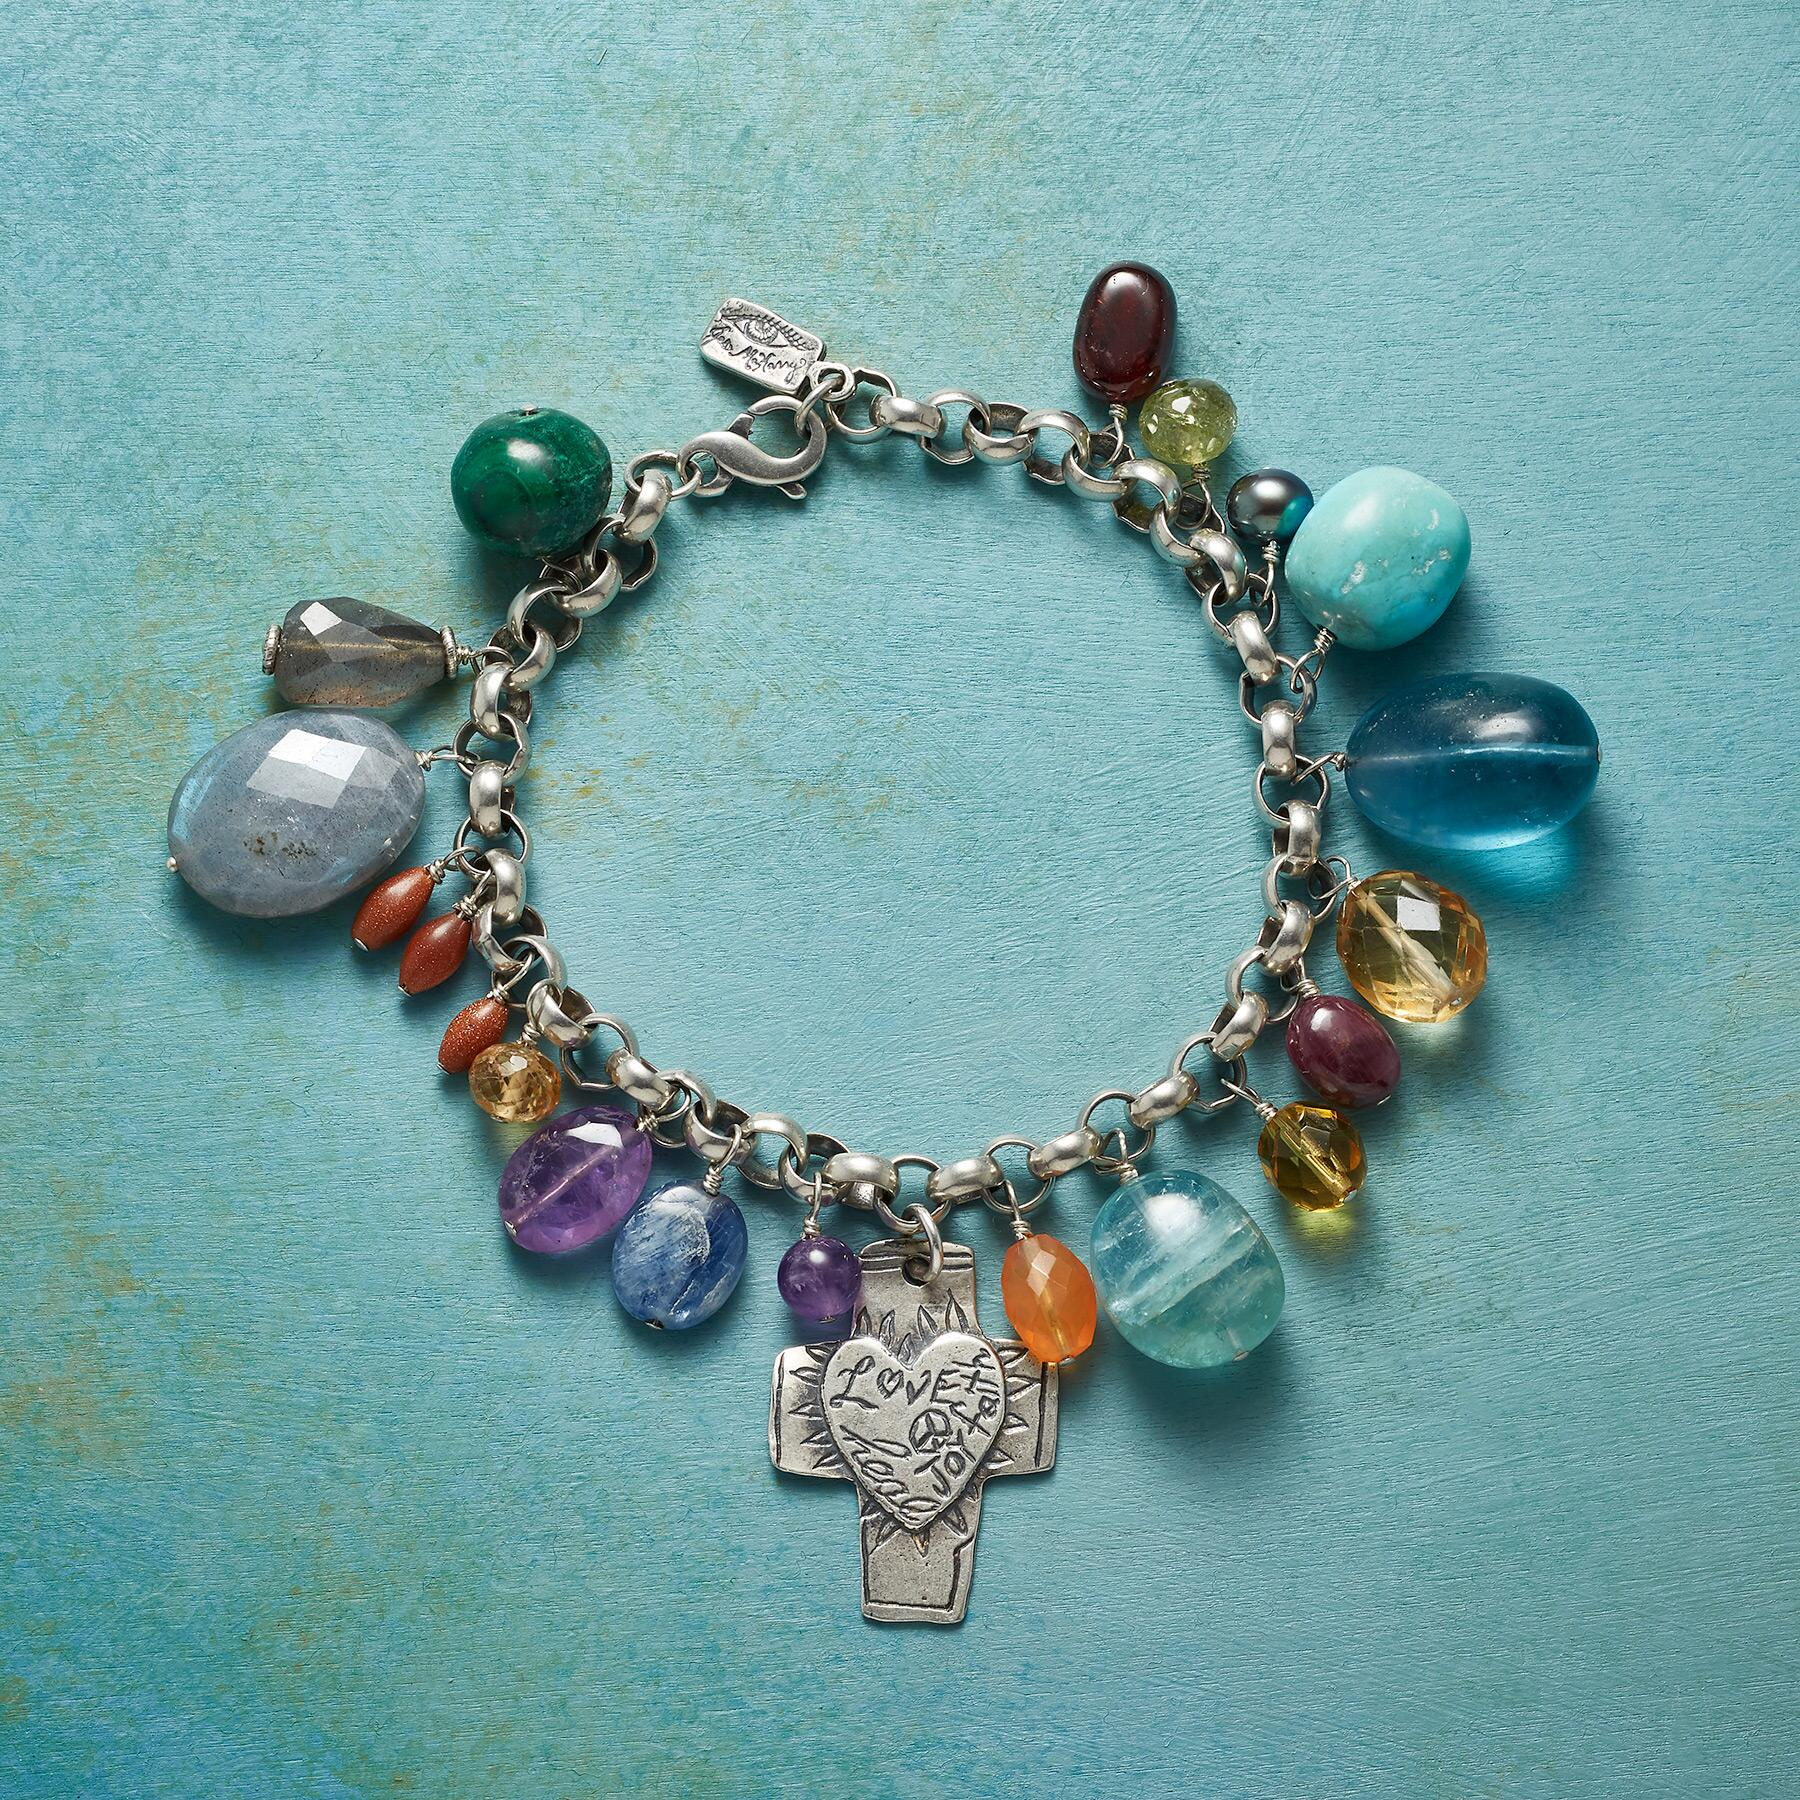 HEARTFELT FAITH BRACELET: View 1